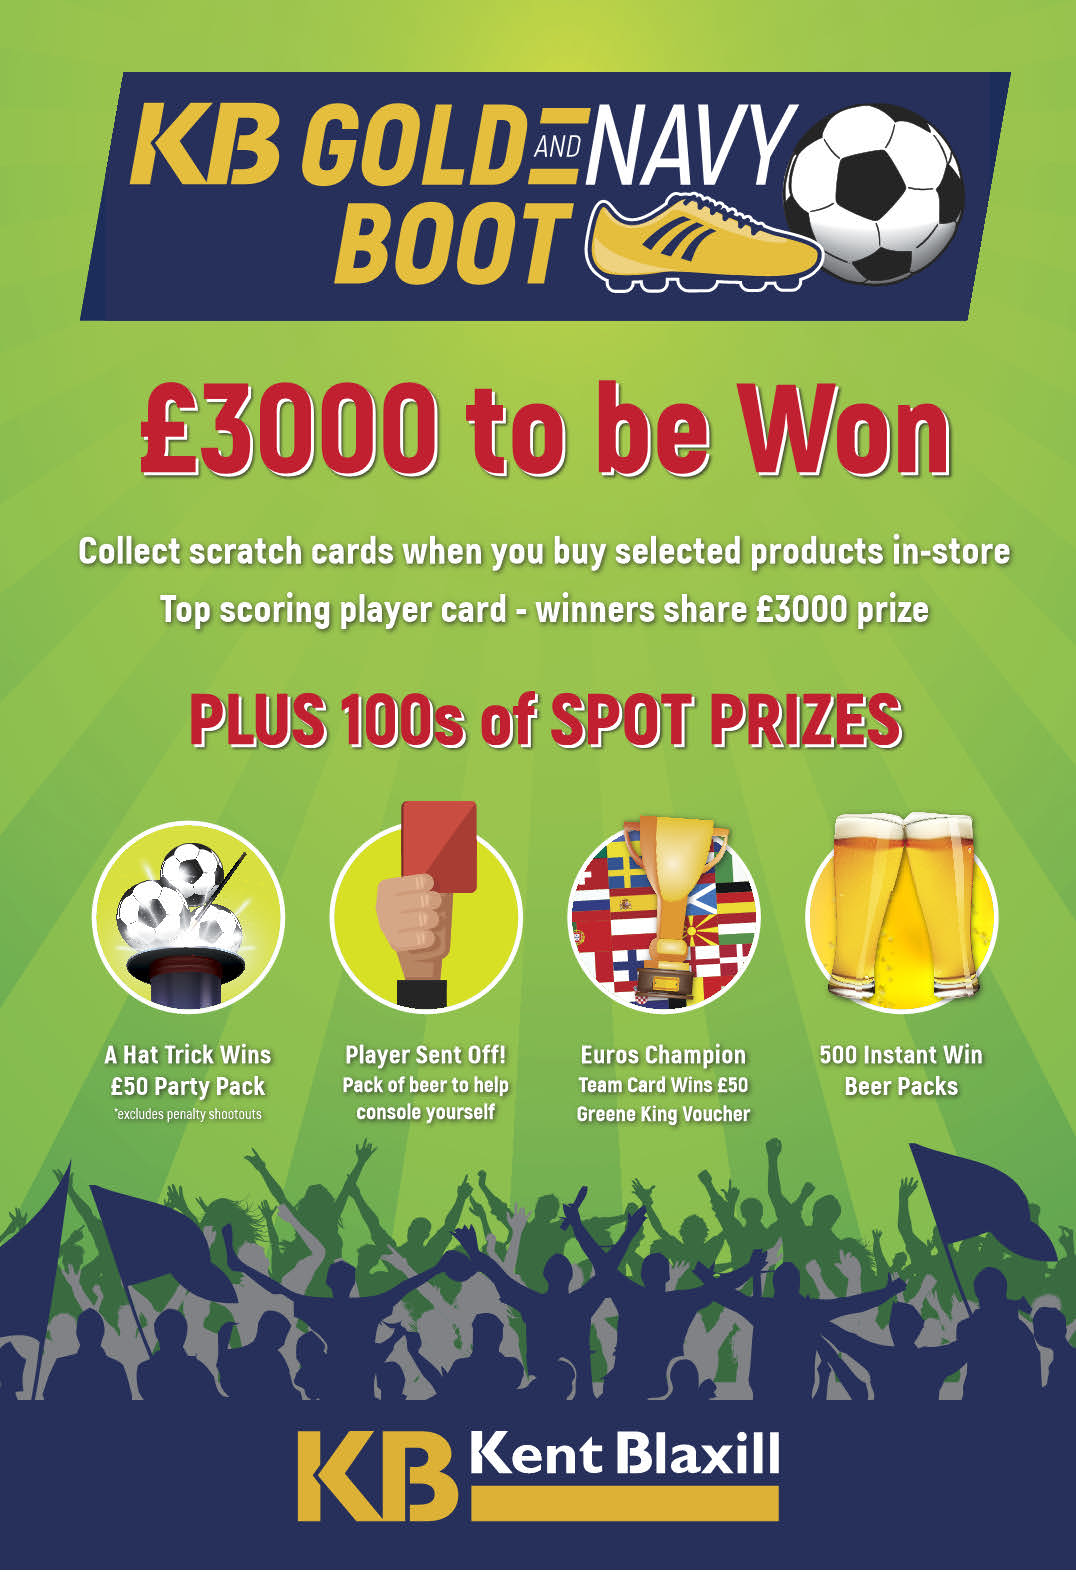 Gold & Navy Boot Promotion